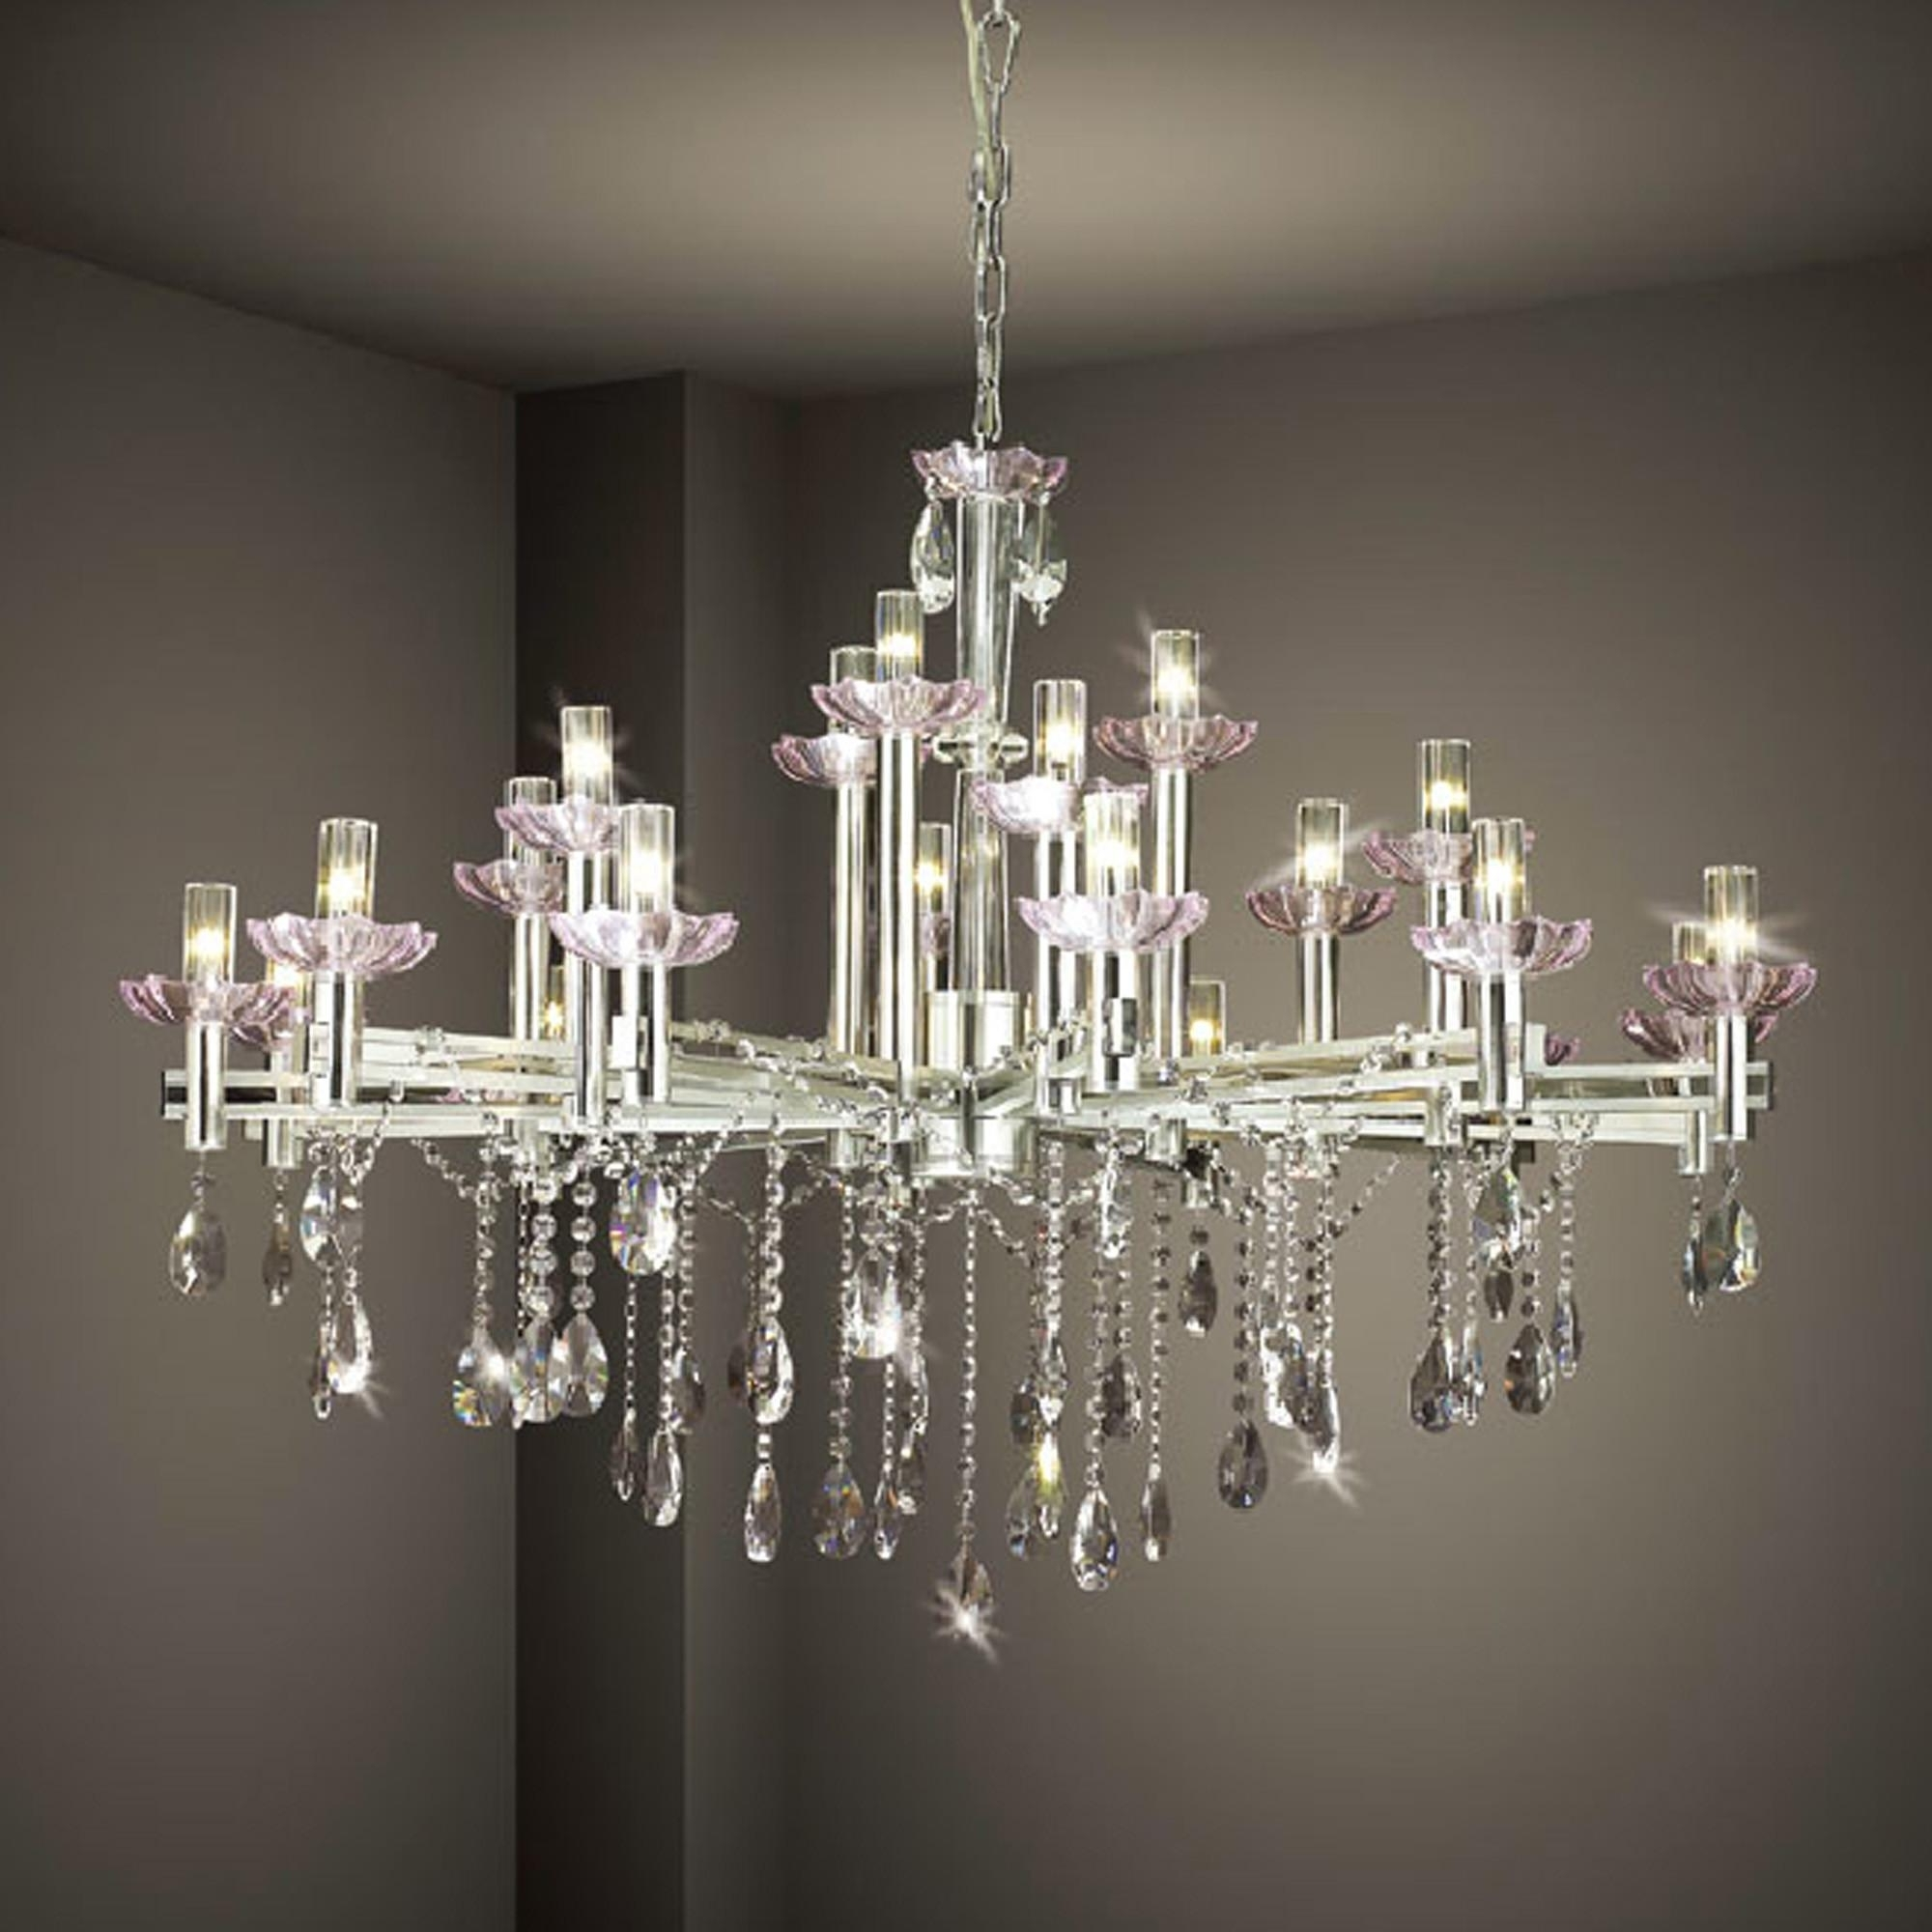 Traditional Chandeliers Regarding Trendy Chandeliers : Traditional Chandeliers Luxury Chandeliers Chandelier (View 10 of 20)